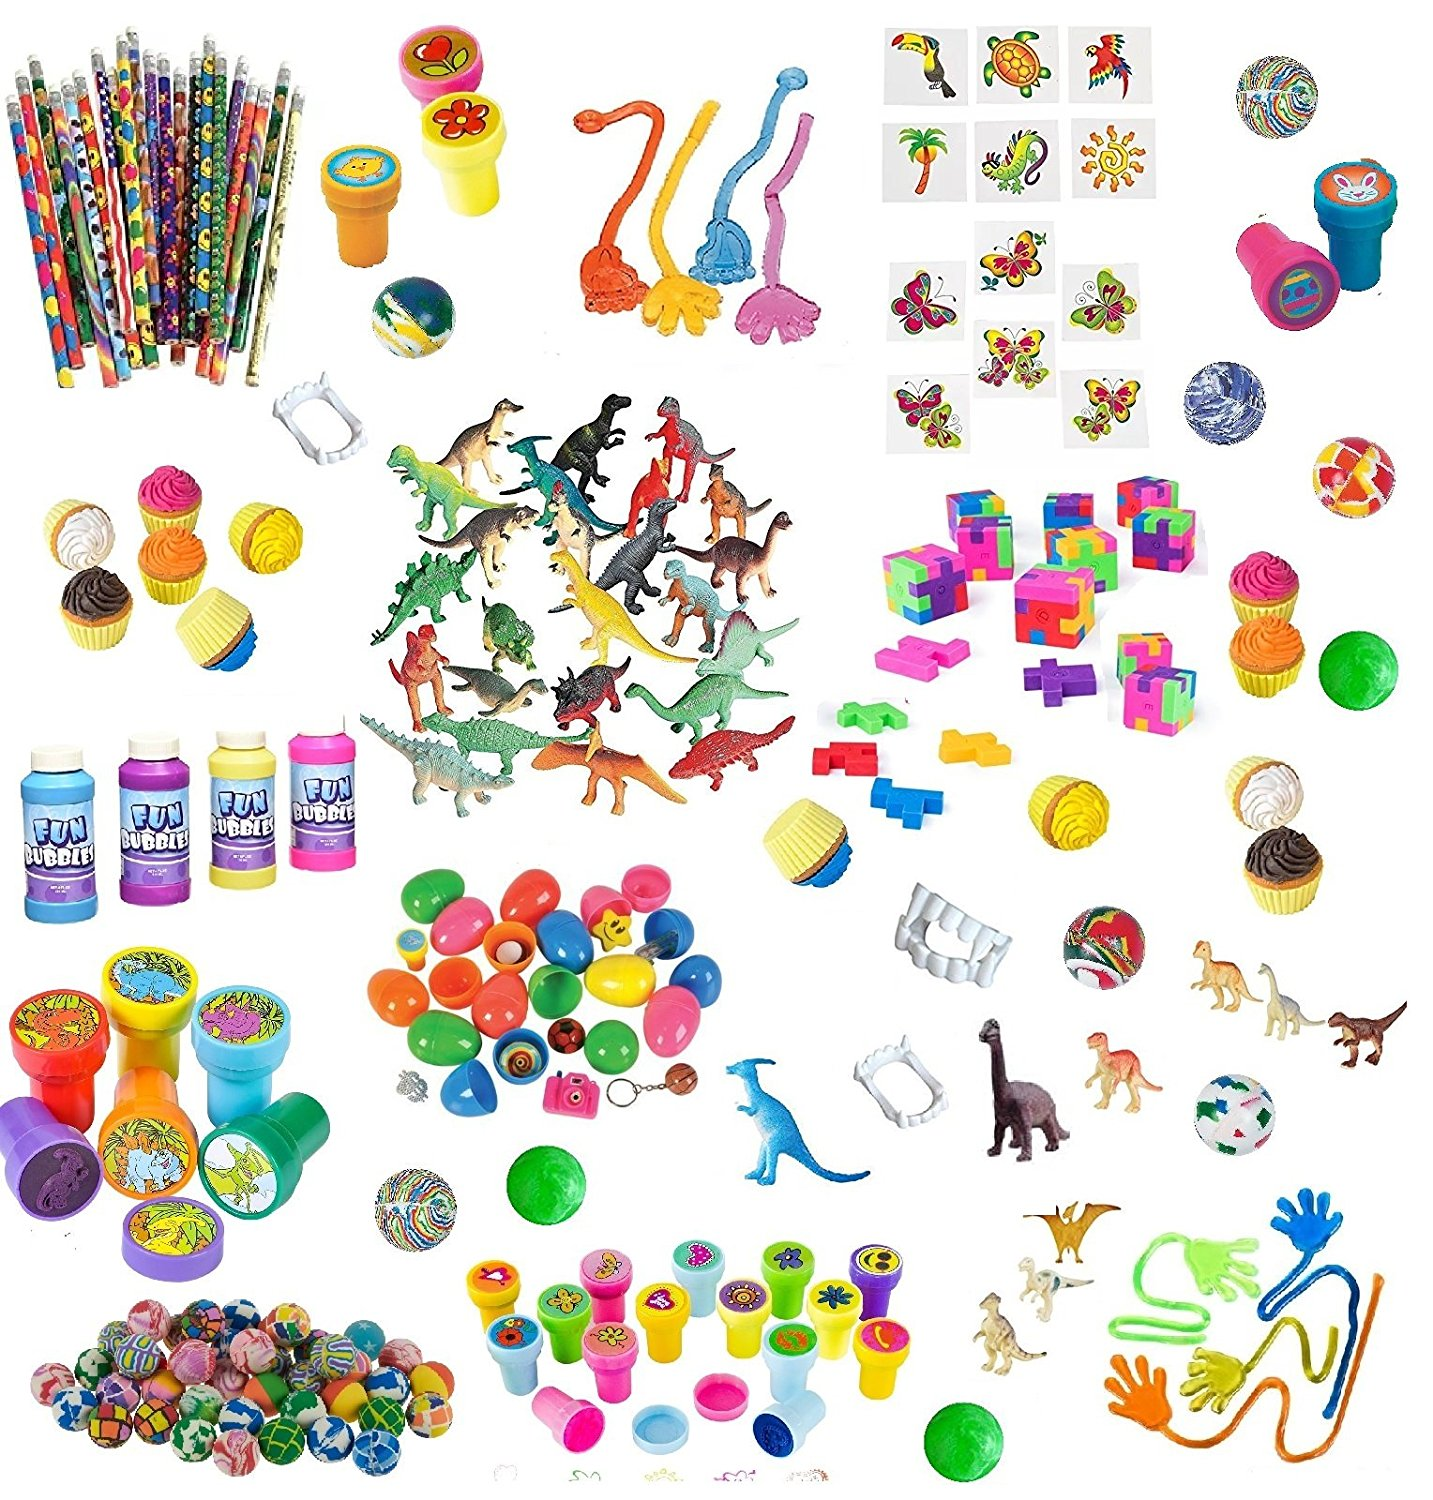 Good prizes for kids birthday party